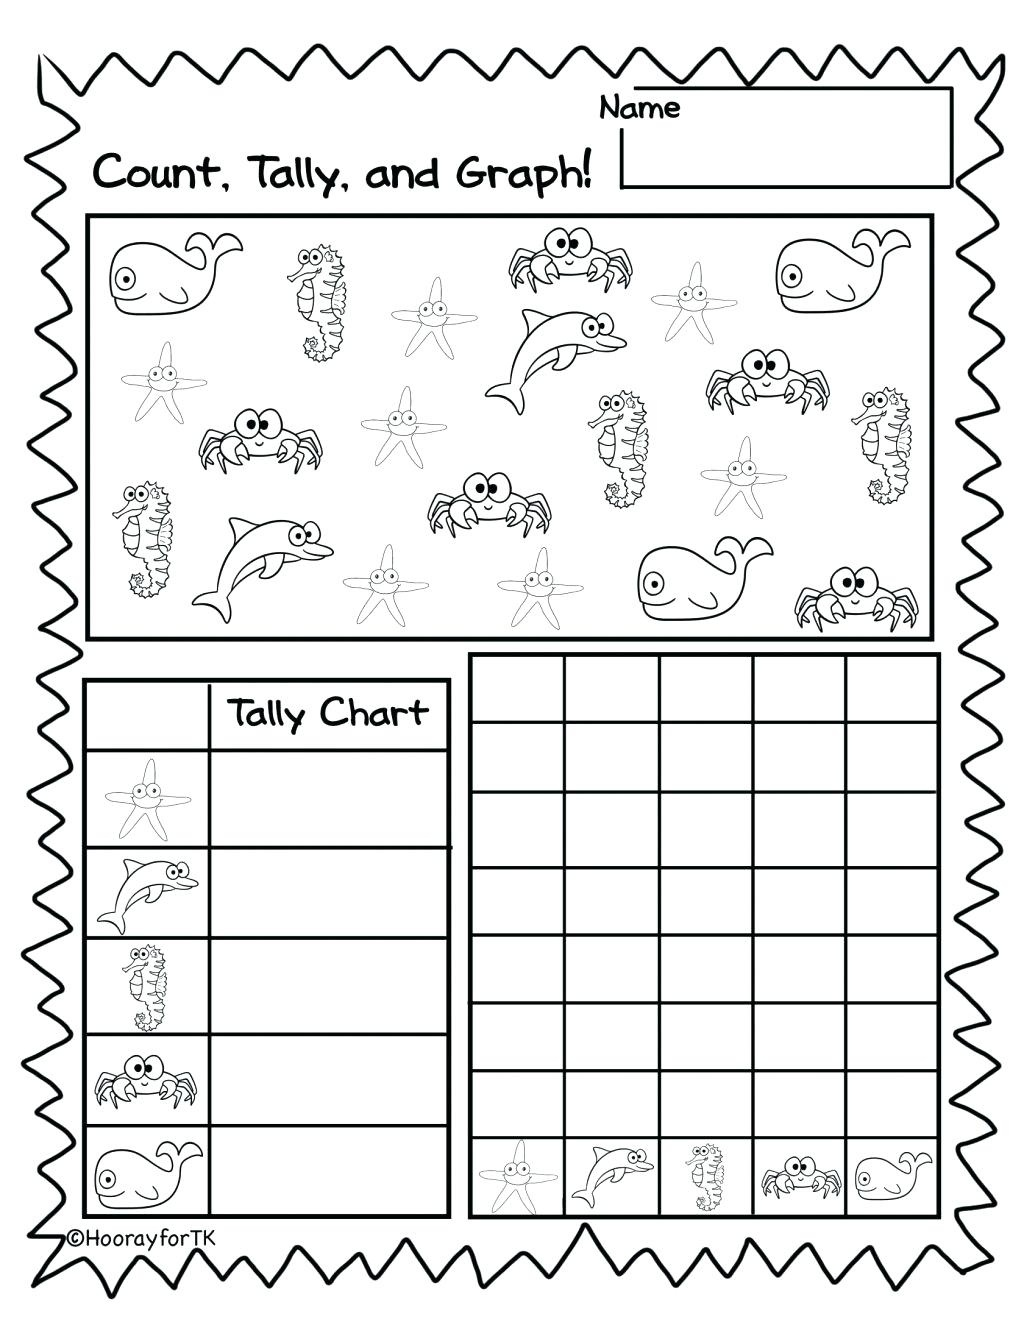 Kindergarten Graphing Worksheets – Karyaqq.club - Free Printable Graphs For Kindergarten